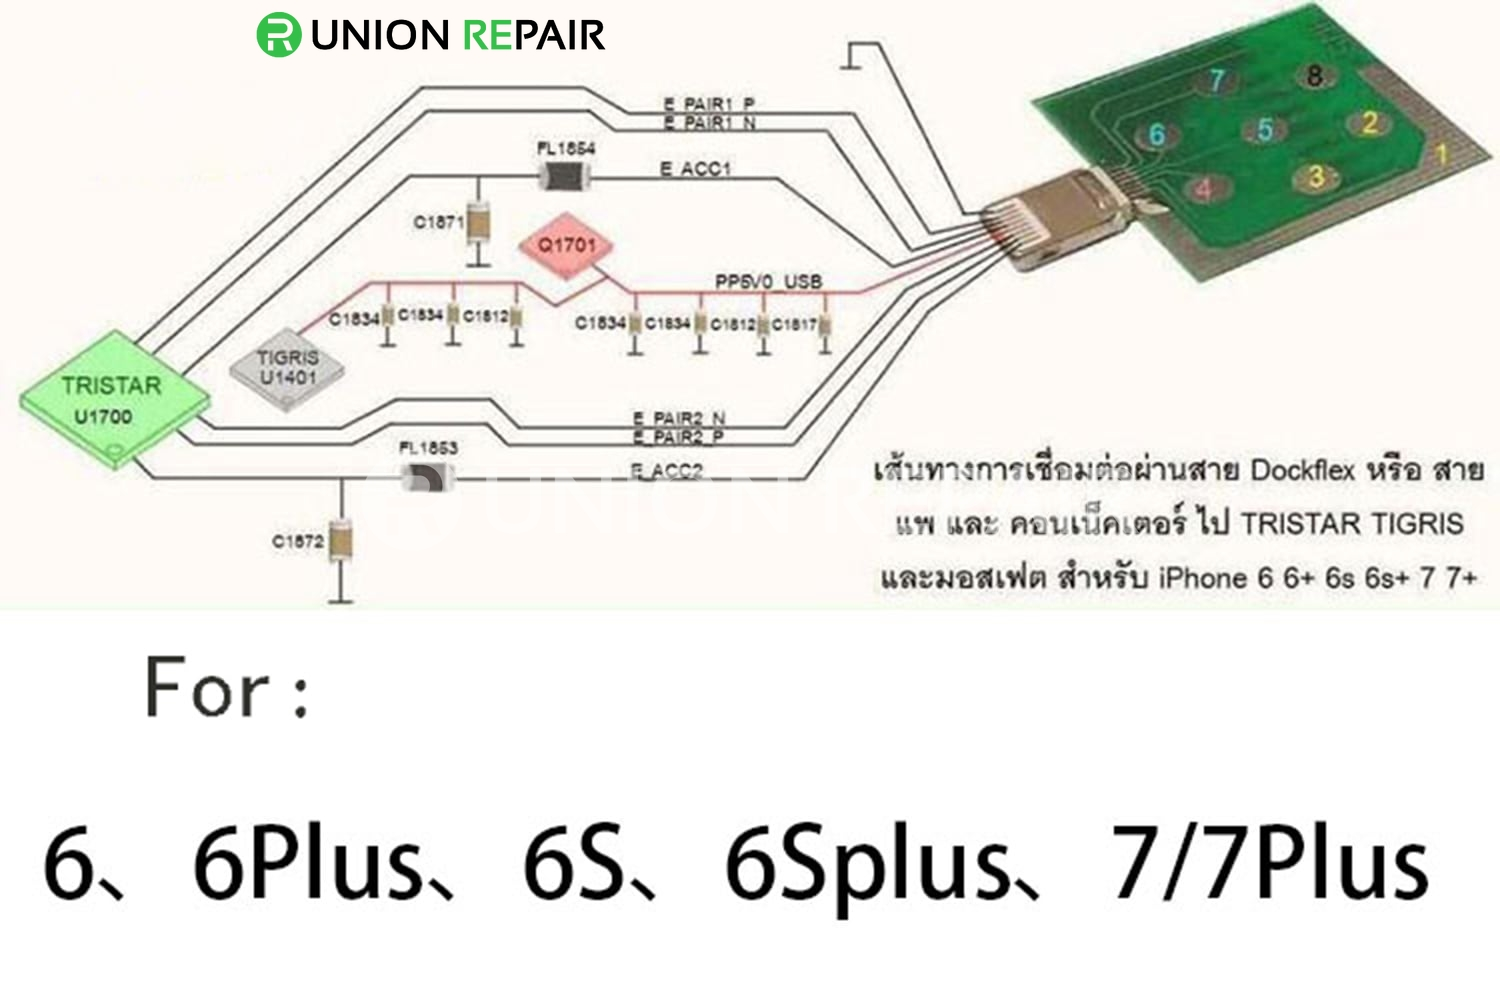 Iphone 4 Dock Wiring Diagram Diagrams Cable Schematics Phone Cord Battery